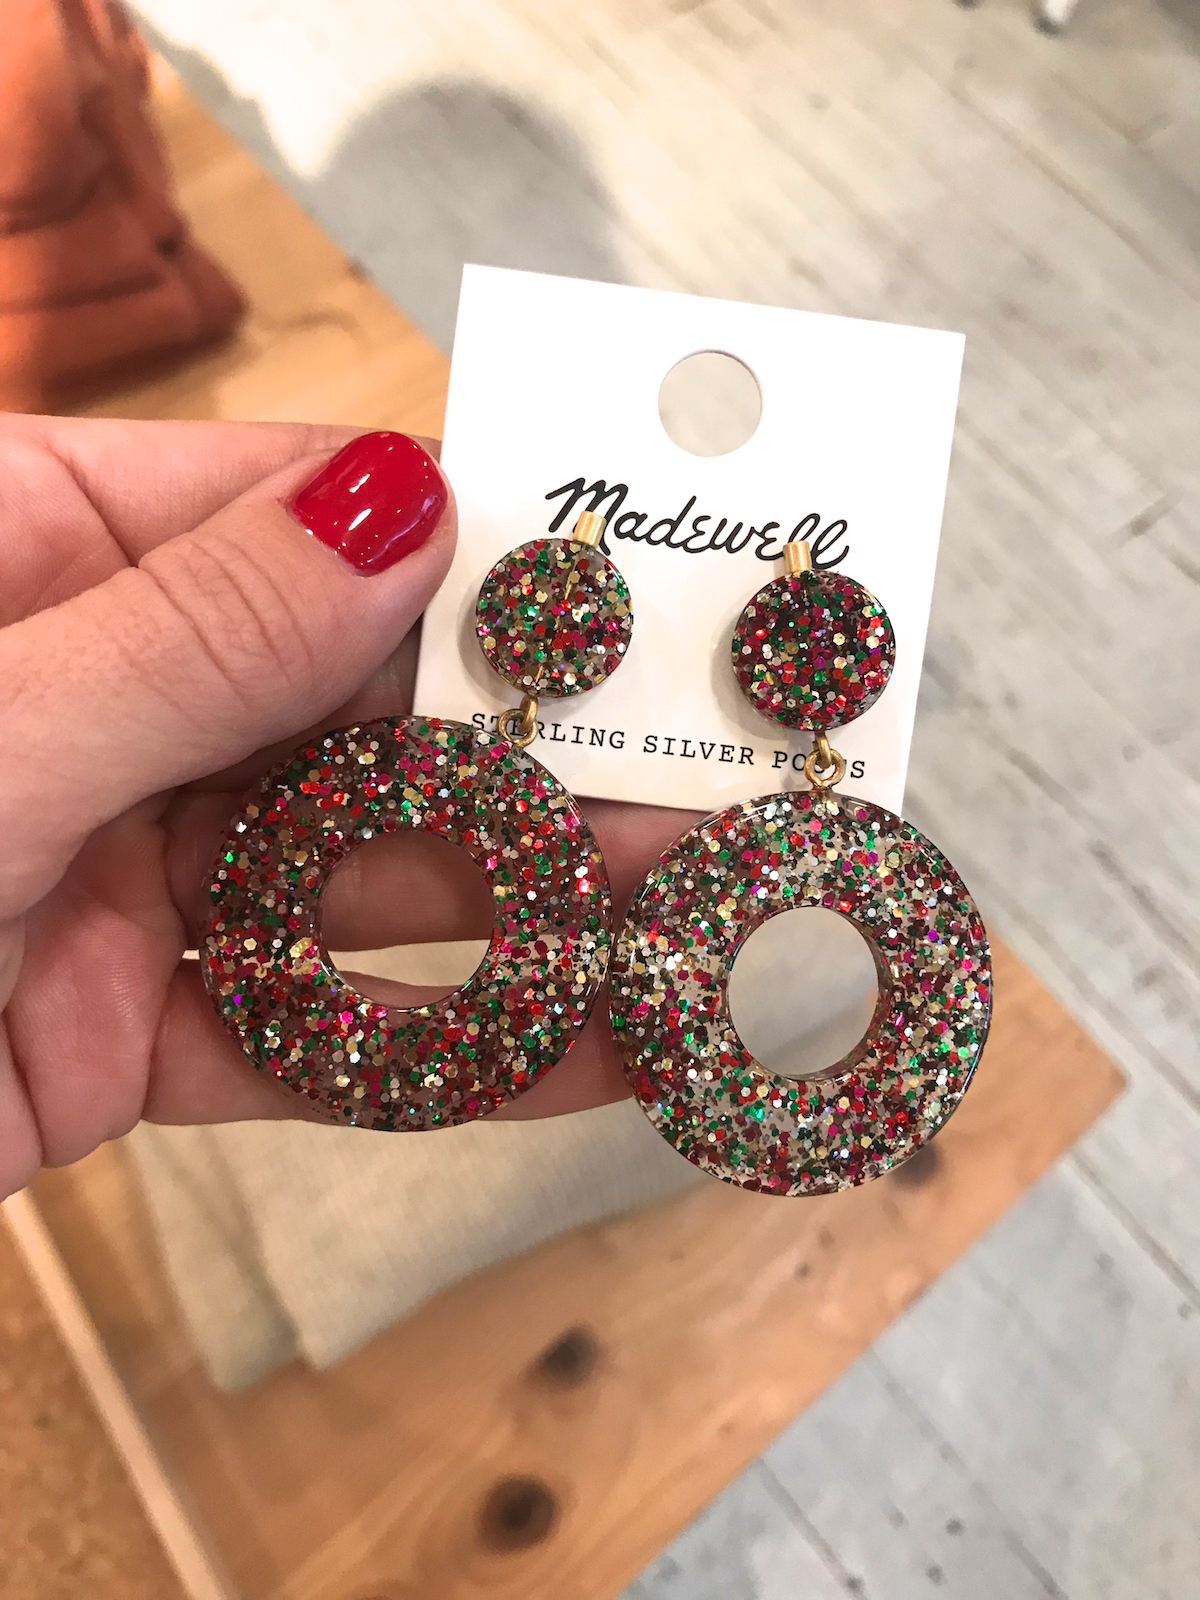 Black Friday Sales Madewell Earrings